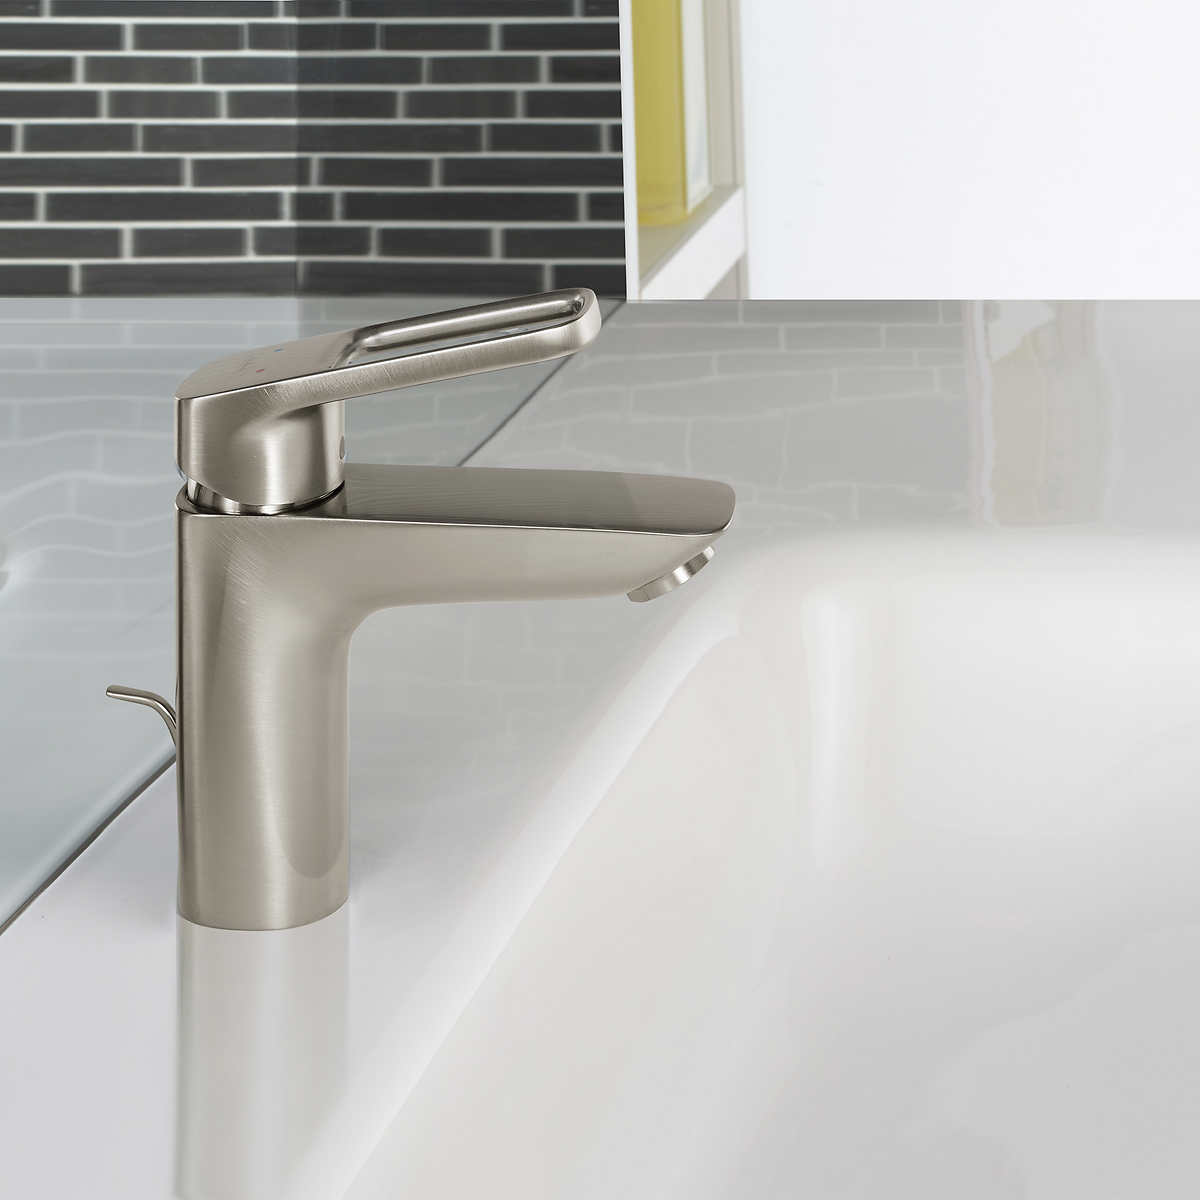 bathroom faucets costco kitchen faucet Hansgrohe Logis Loop Single Hole Bathroom Faucet Brushed Nickel